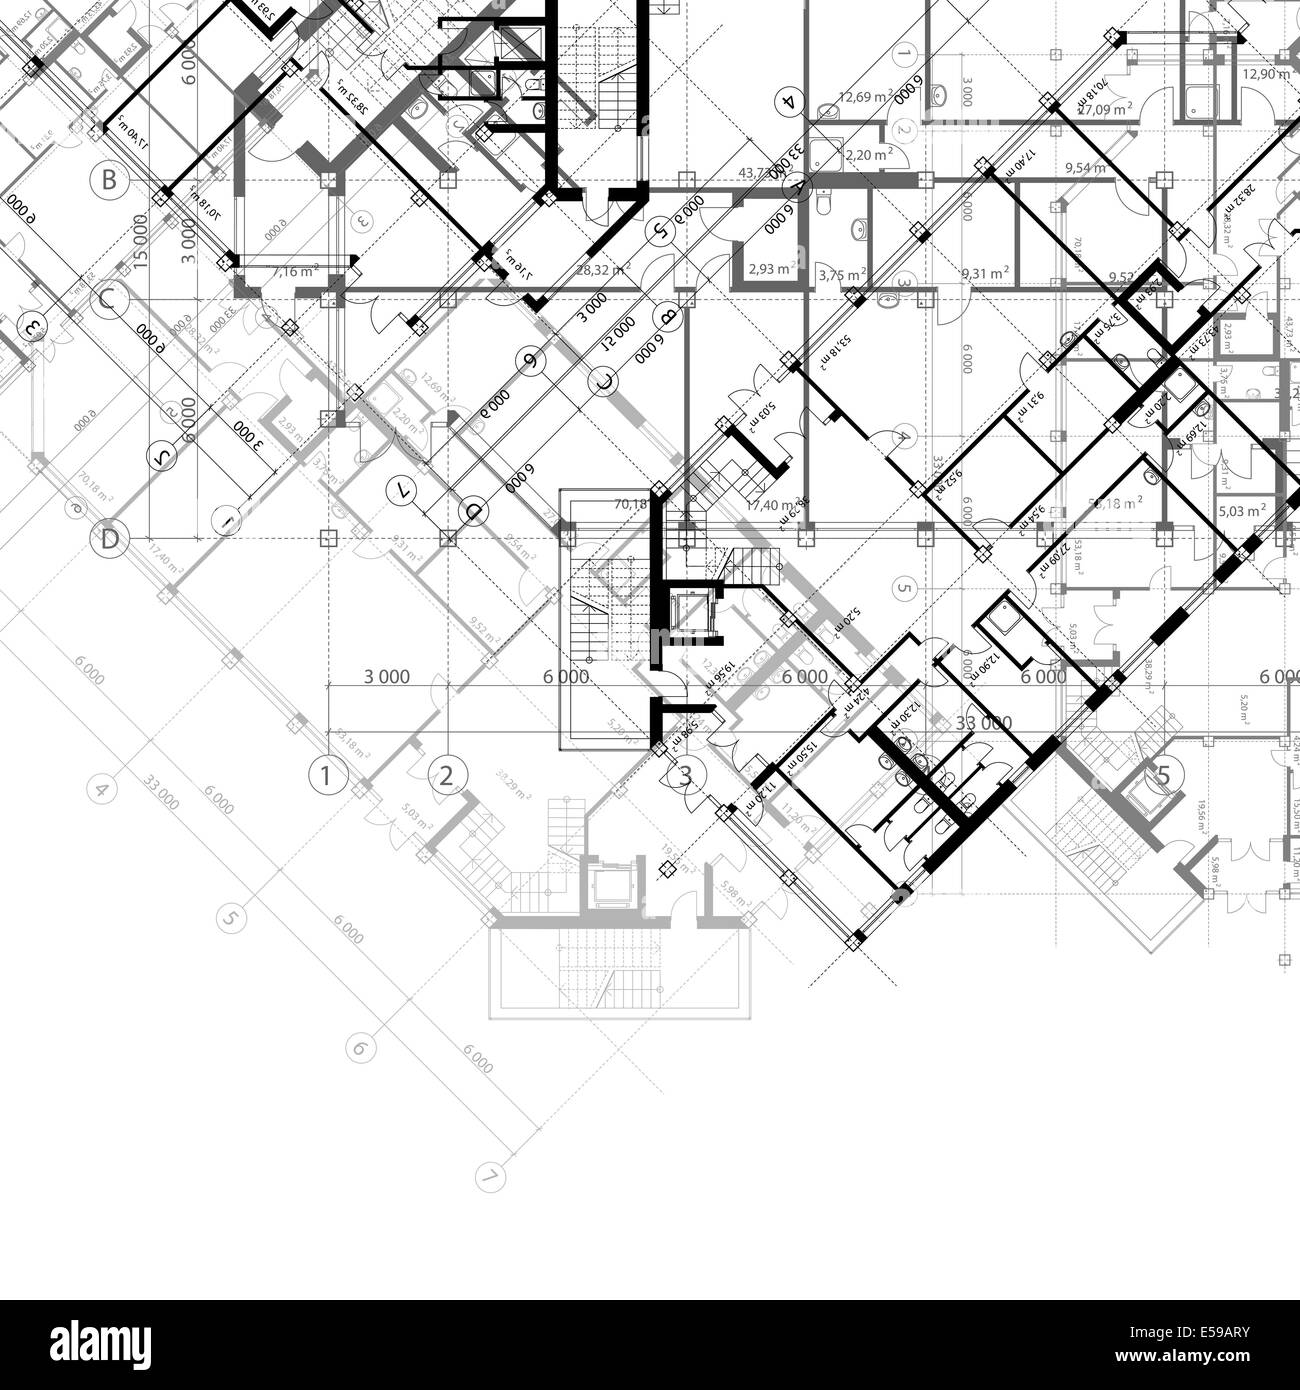 Architectural black and white background with plans of building architectural black and white background with plans of building malvernweather Gallery